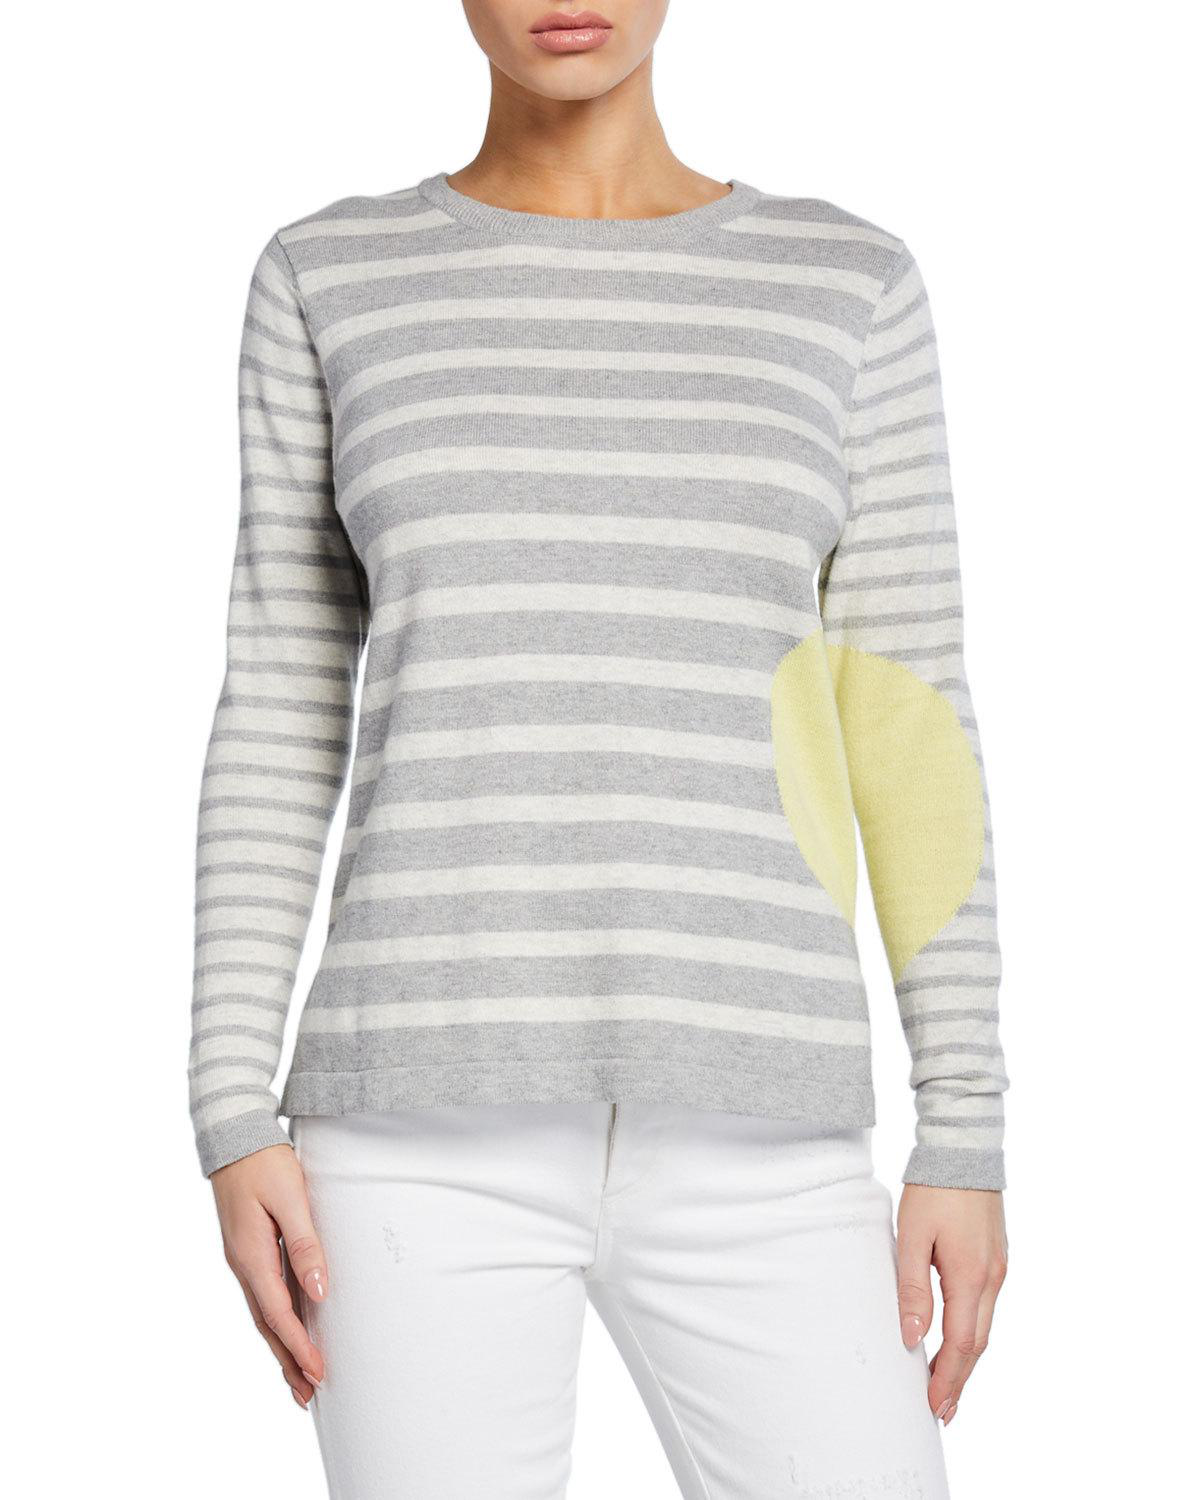 Cotton long sleeve petite tee 14